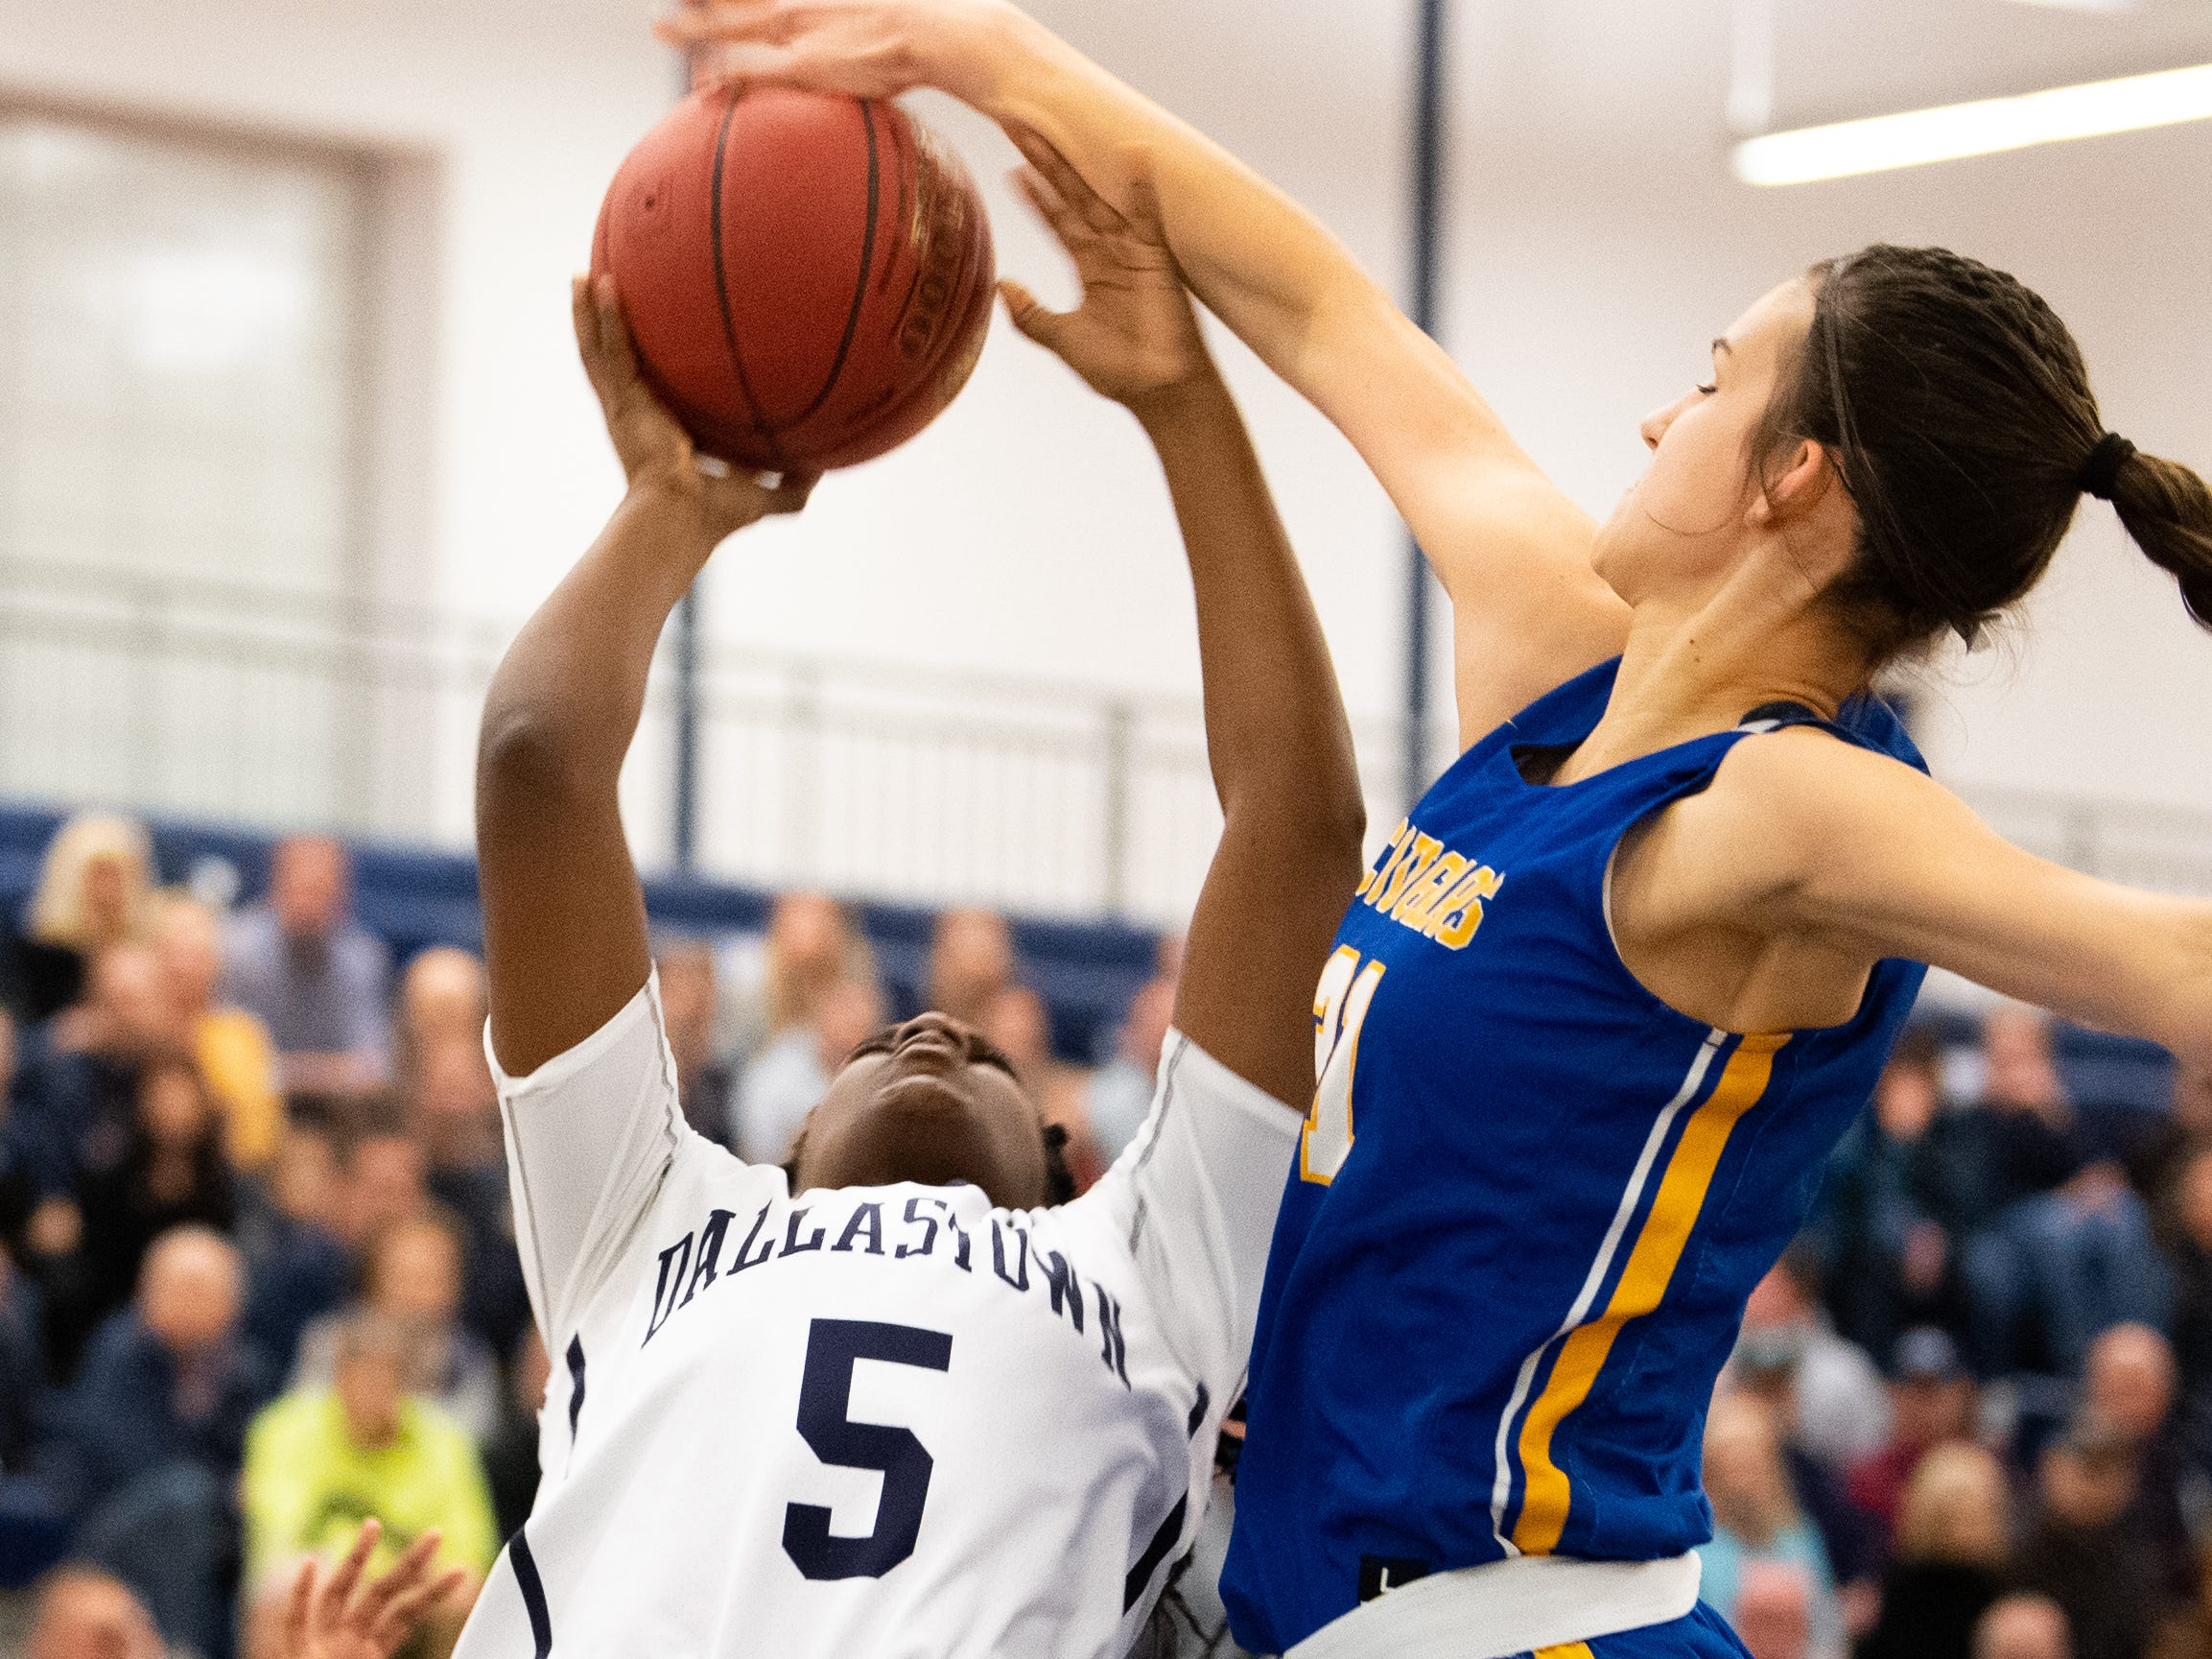 Bella Smuda (31) blocks Dallastown's D'Shante Edwards (5) during the PIAA first round girls' basketball game between Dallastown and Downingtown East Friday, March 8, 2019 at West York Area High School. The Wildcats are neck and neck with the Cougars.